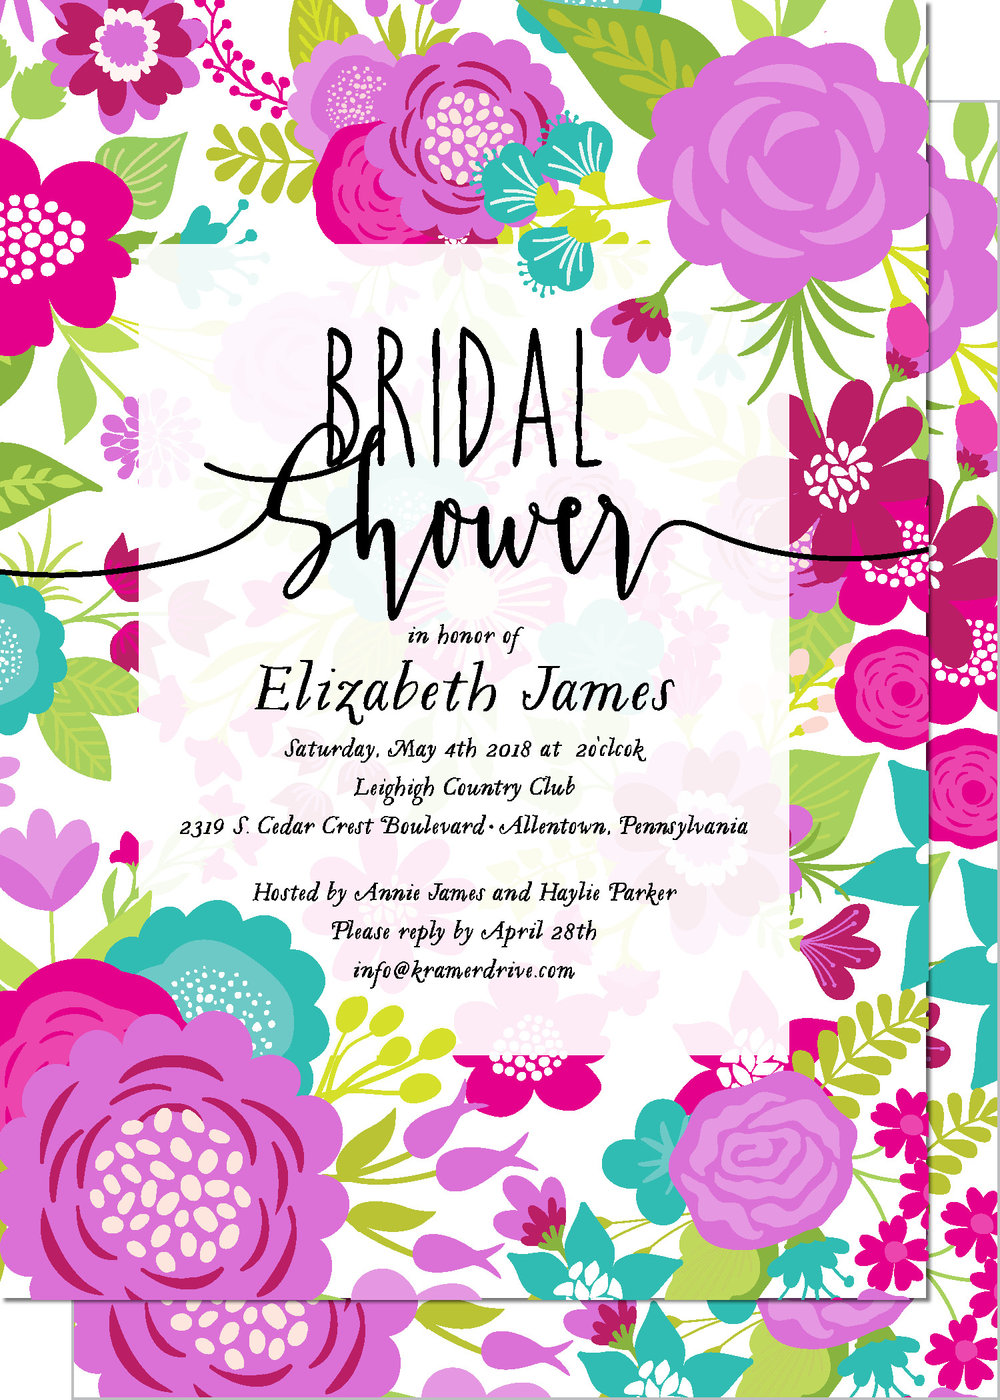 KD2138IN-PB Floral Frame Bridal Shower